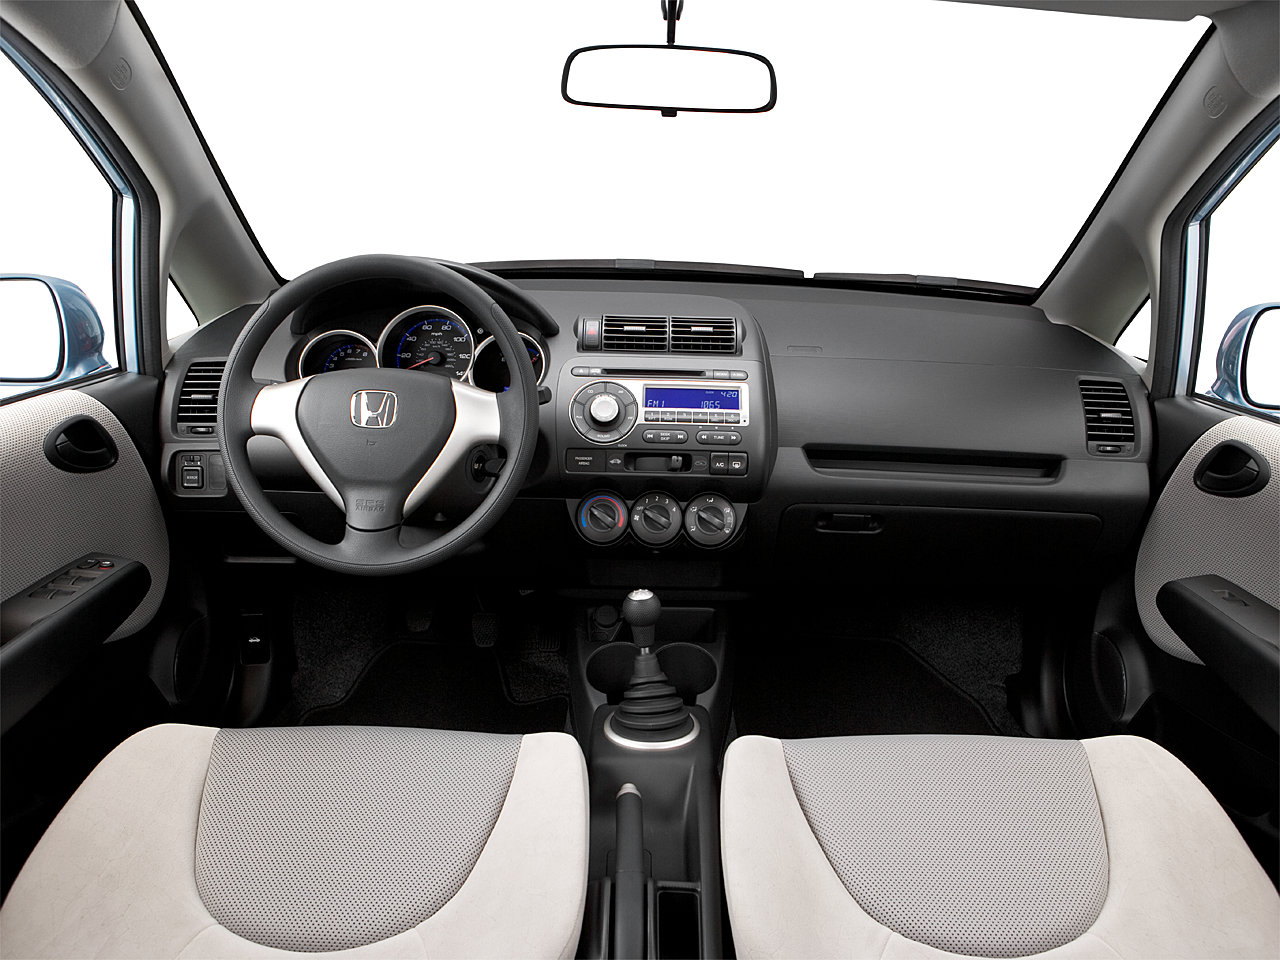 2007 Honda Fit, centered wide dash shot